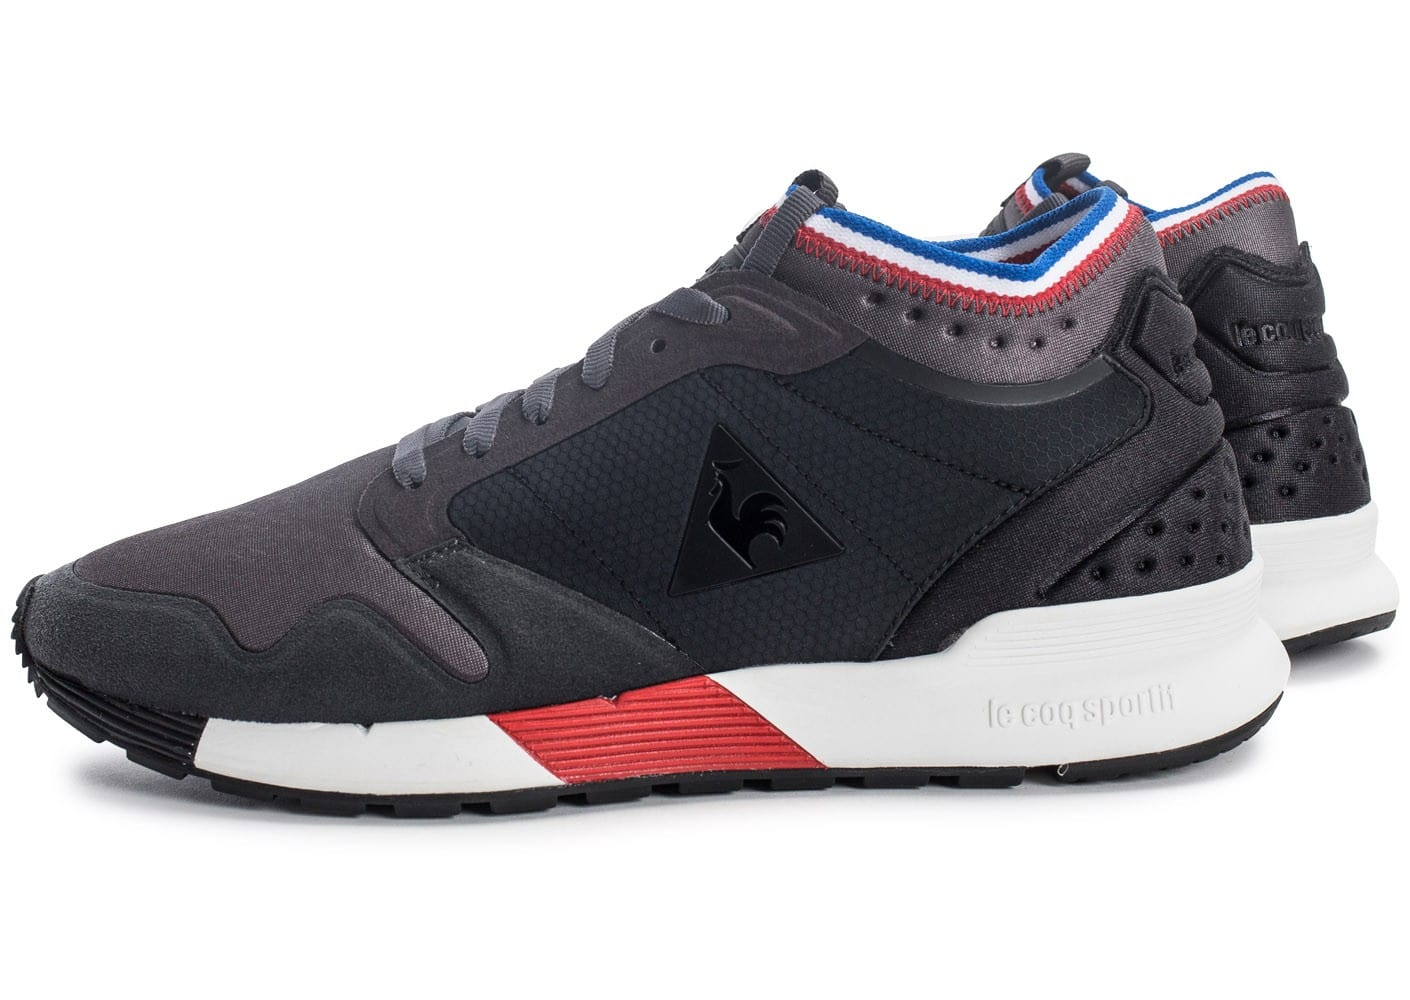 Chaussures Sportif Tricolore Homme Coq Ripstop Omicron Baskets Le STw7ZPqn